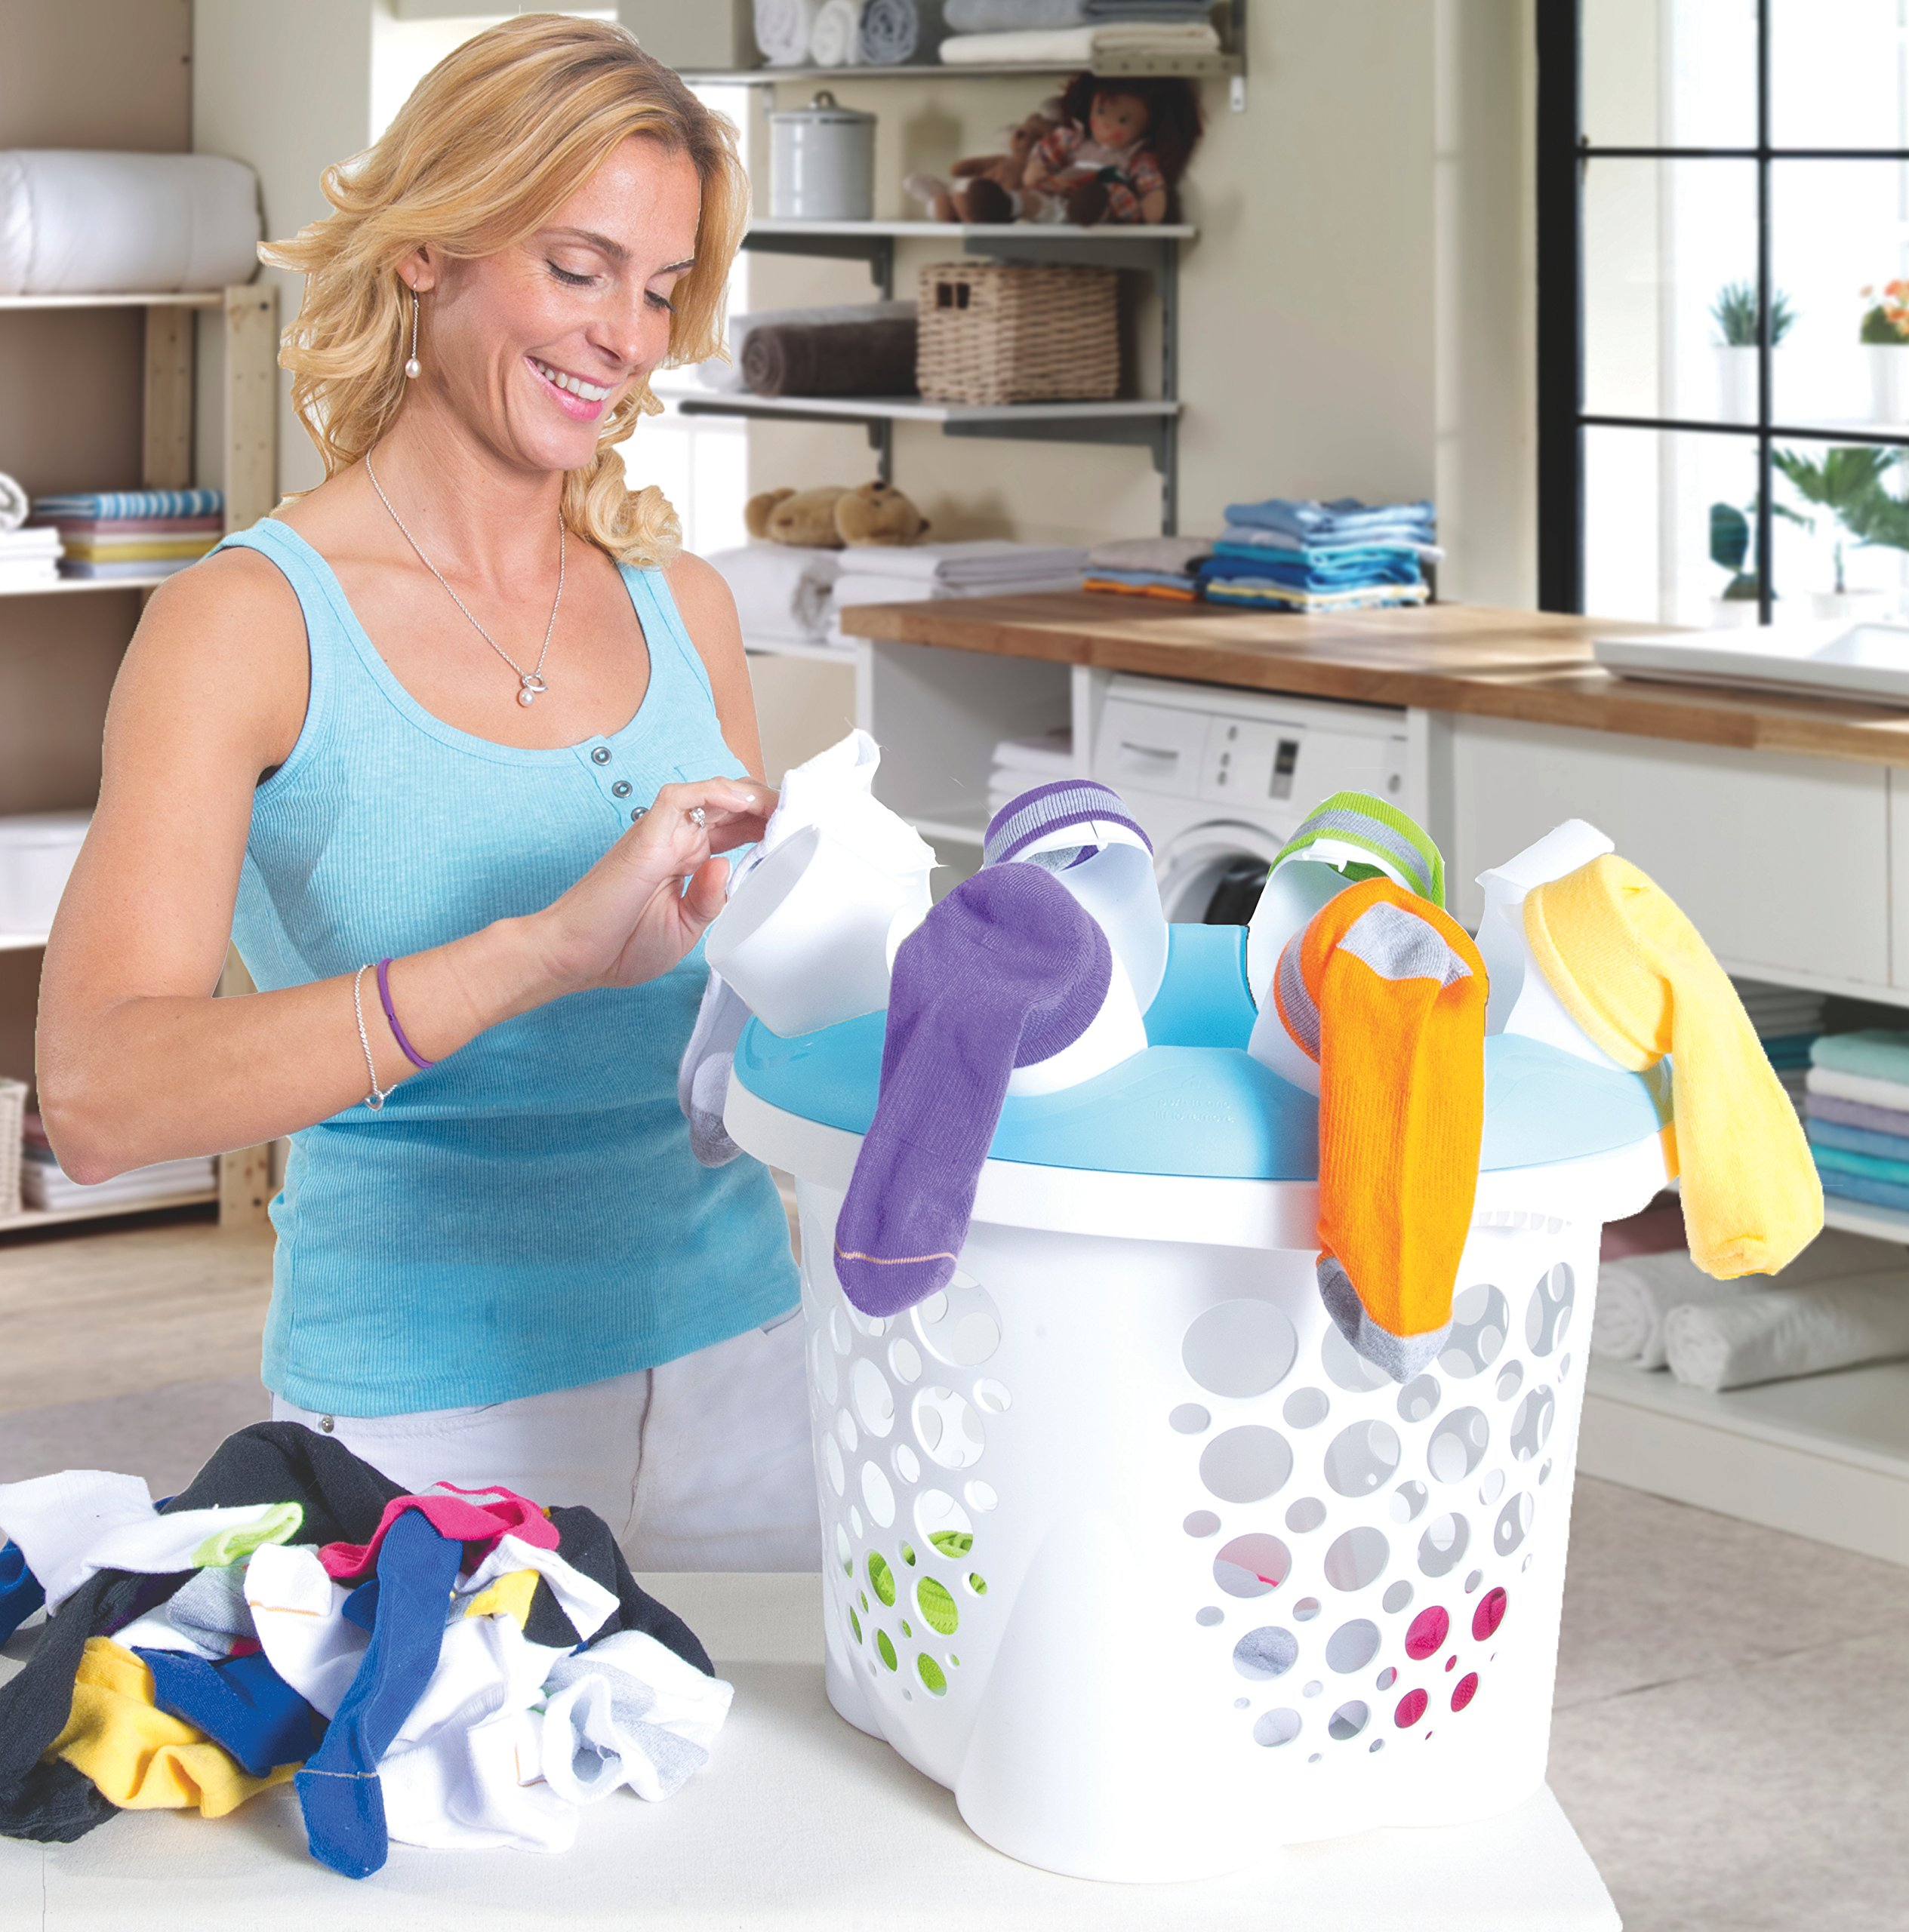 SockSync Sock Sorter, Laundry Organizer - First and Only Patented Solution Solving the Hassle of Sock Sorting and Matching, IHA Innovation Award Finalist, Purple & White Color (Made in USA)